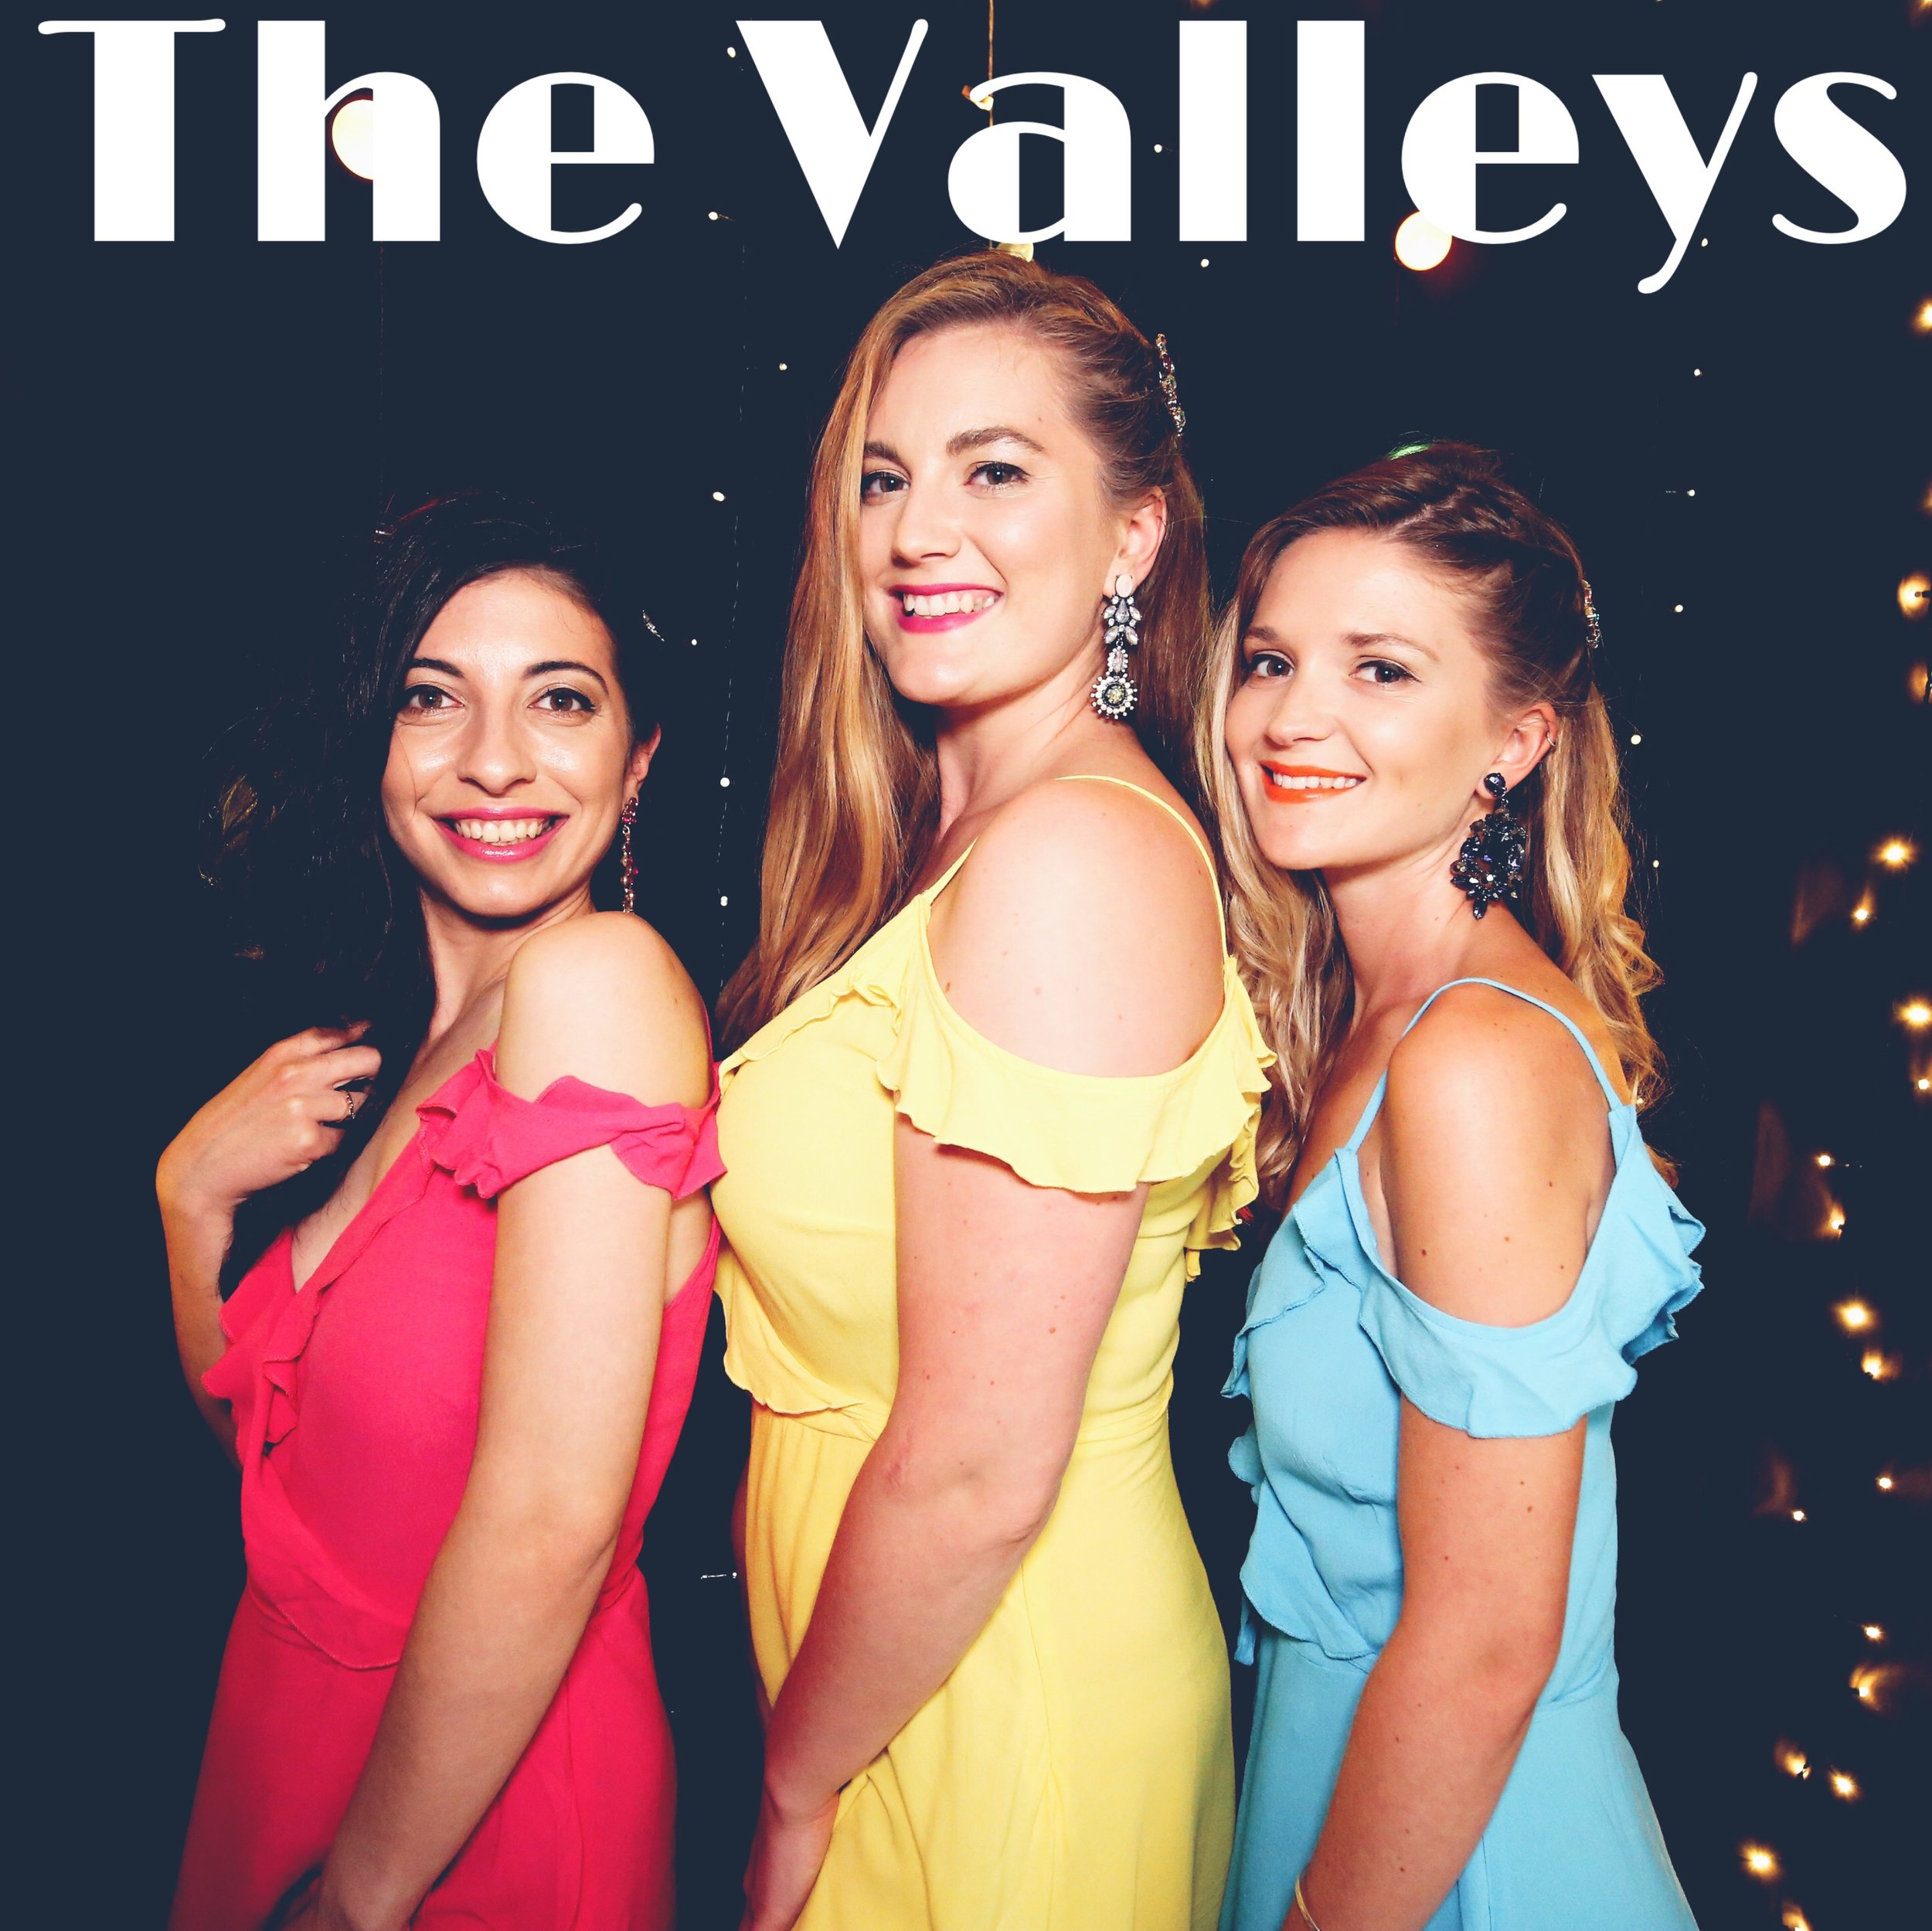 The Valleys - vocal trio - Performing arrangements of classic motown, ballads and even musical theatre, this trio will add harmonic sparkle to your ceremony or reception.